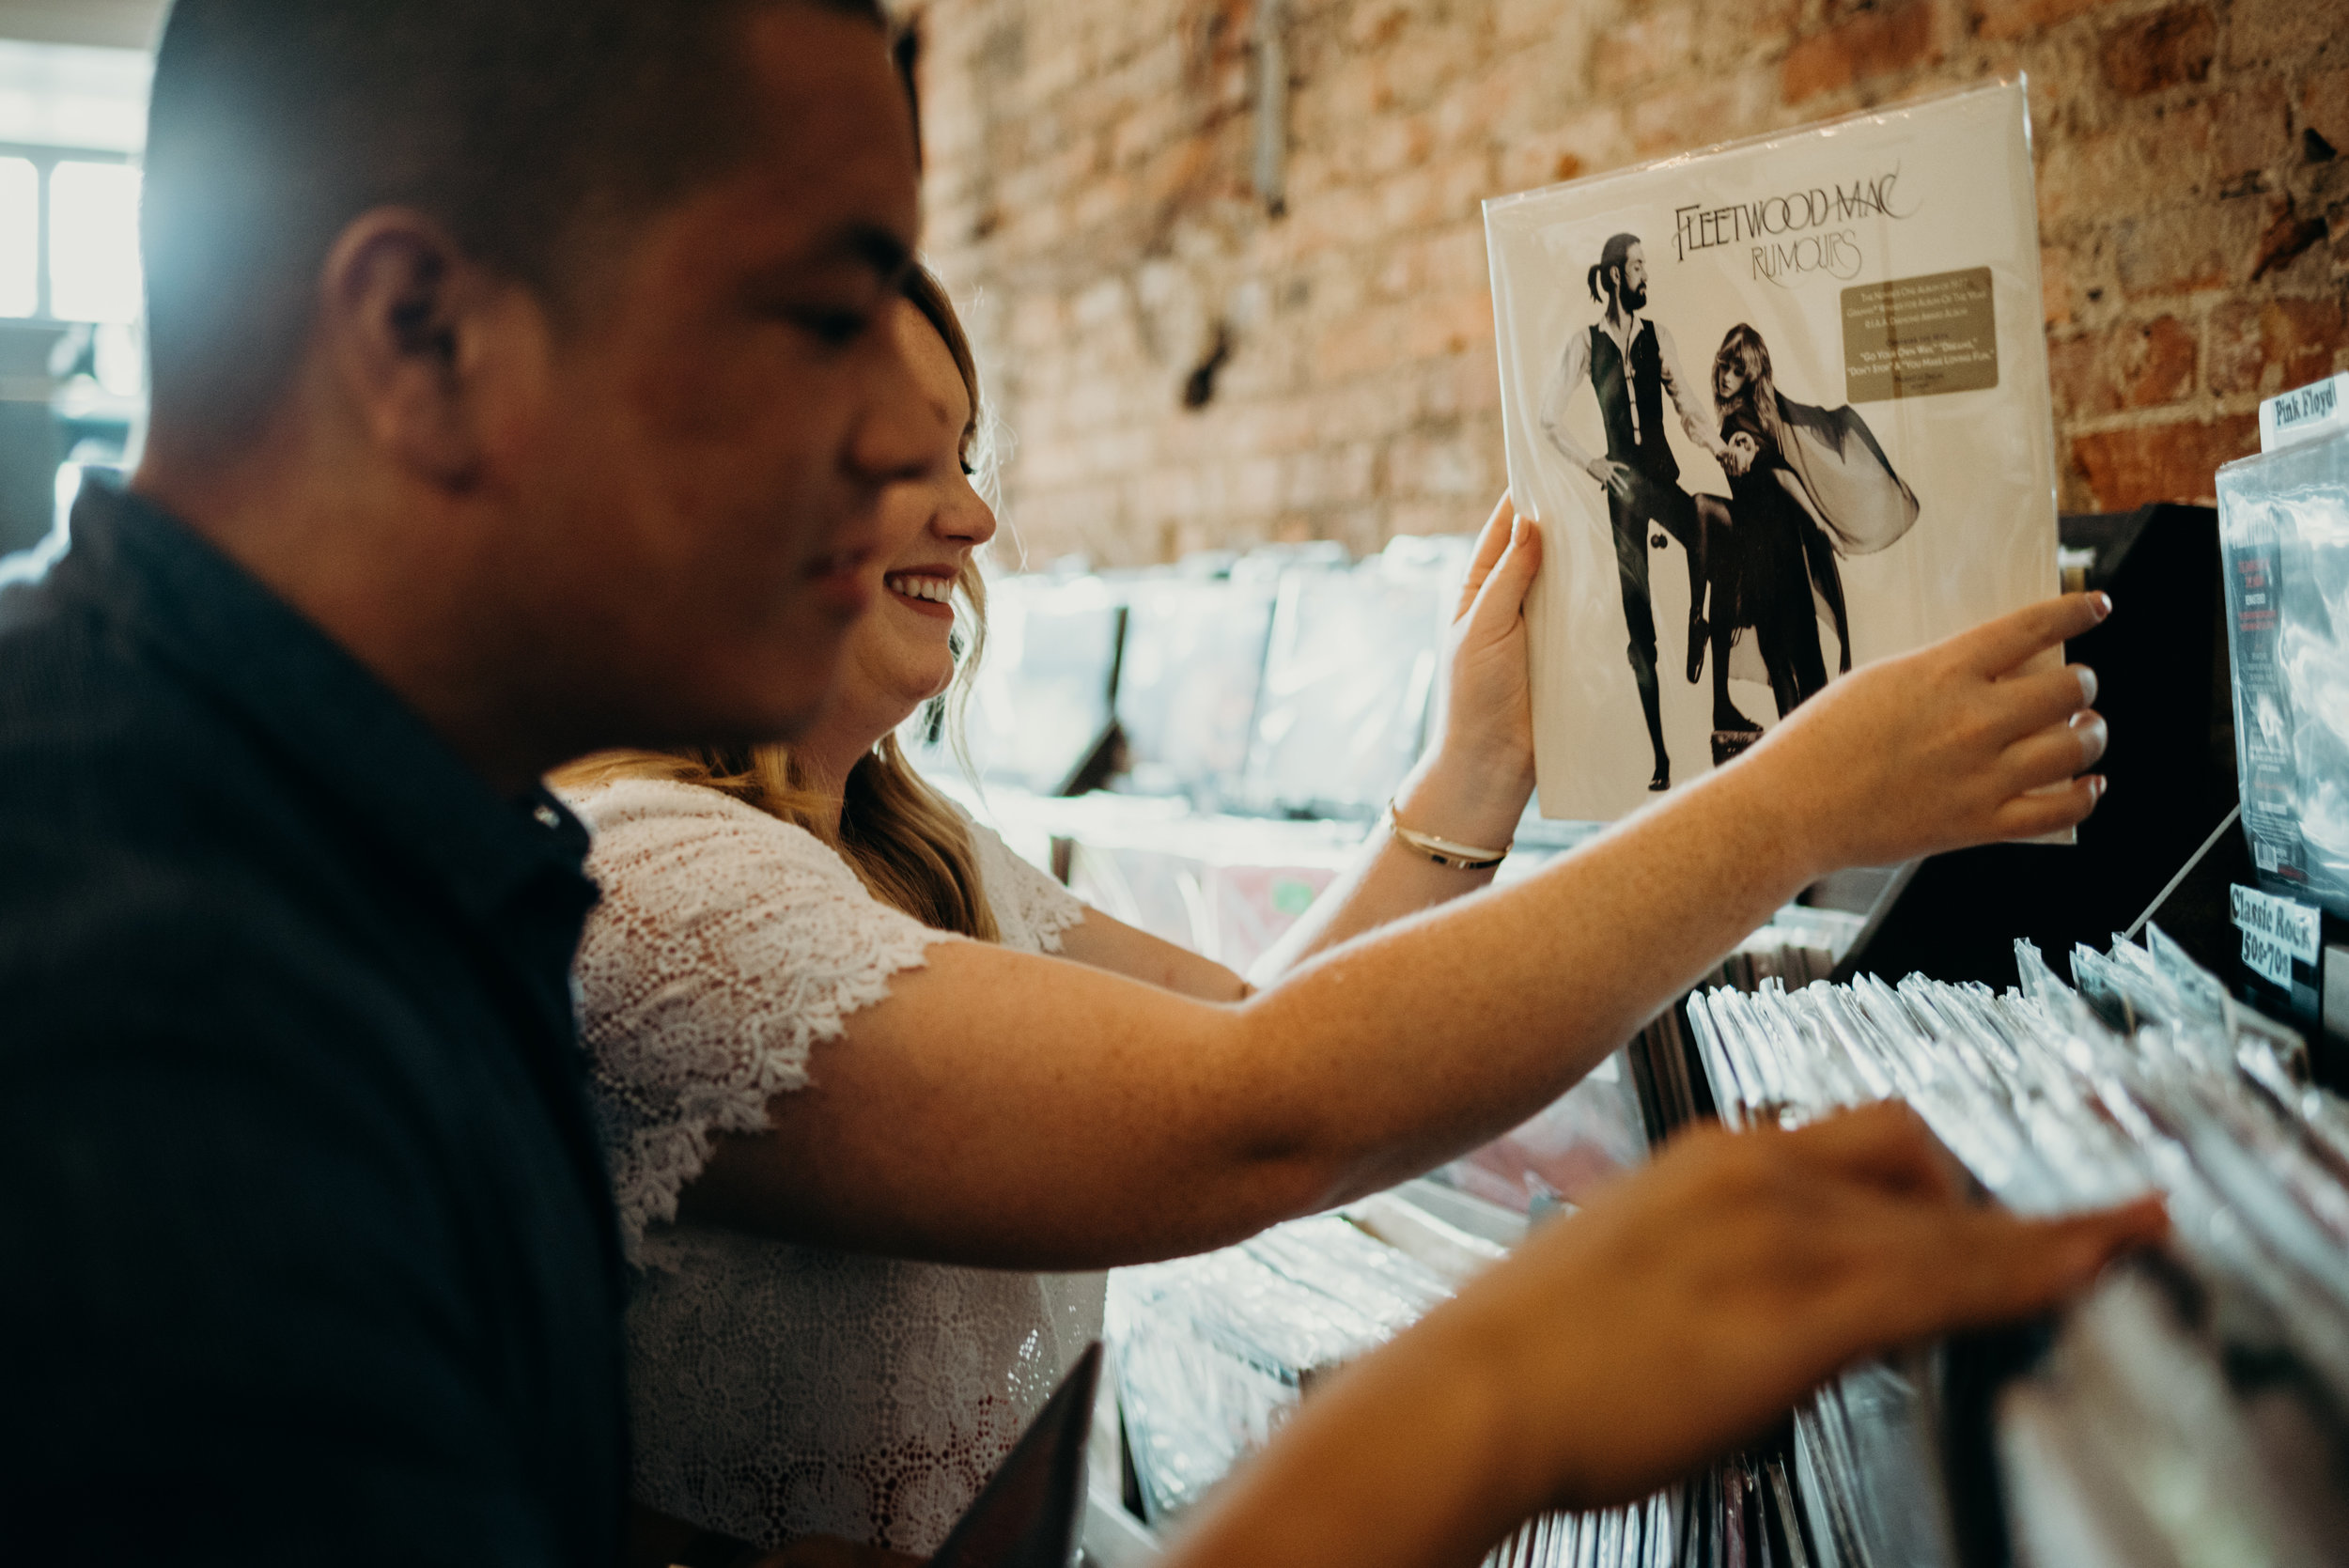 shopping for Fleetwood Mac record during engagement photography session